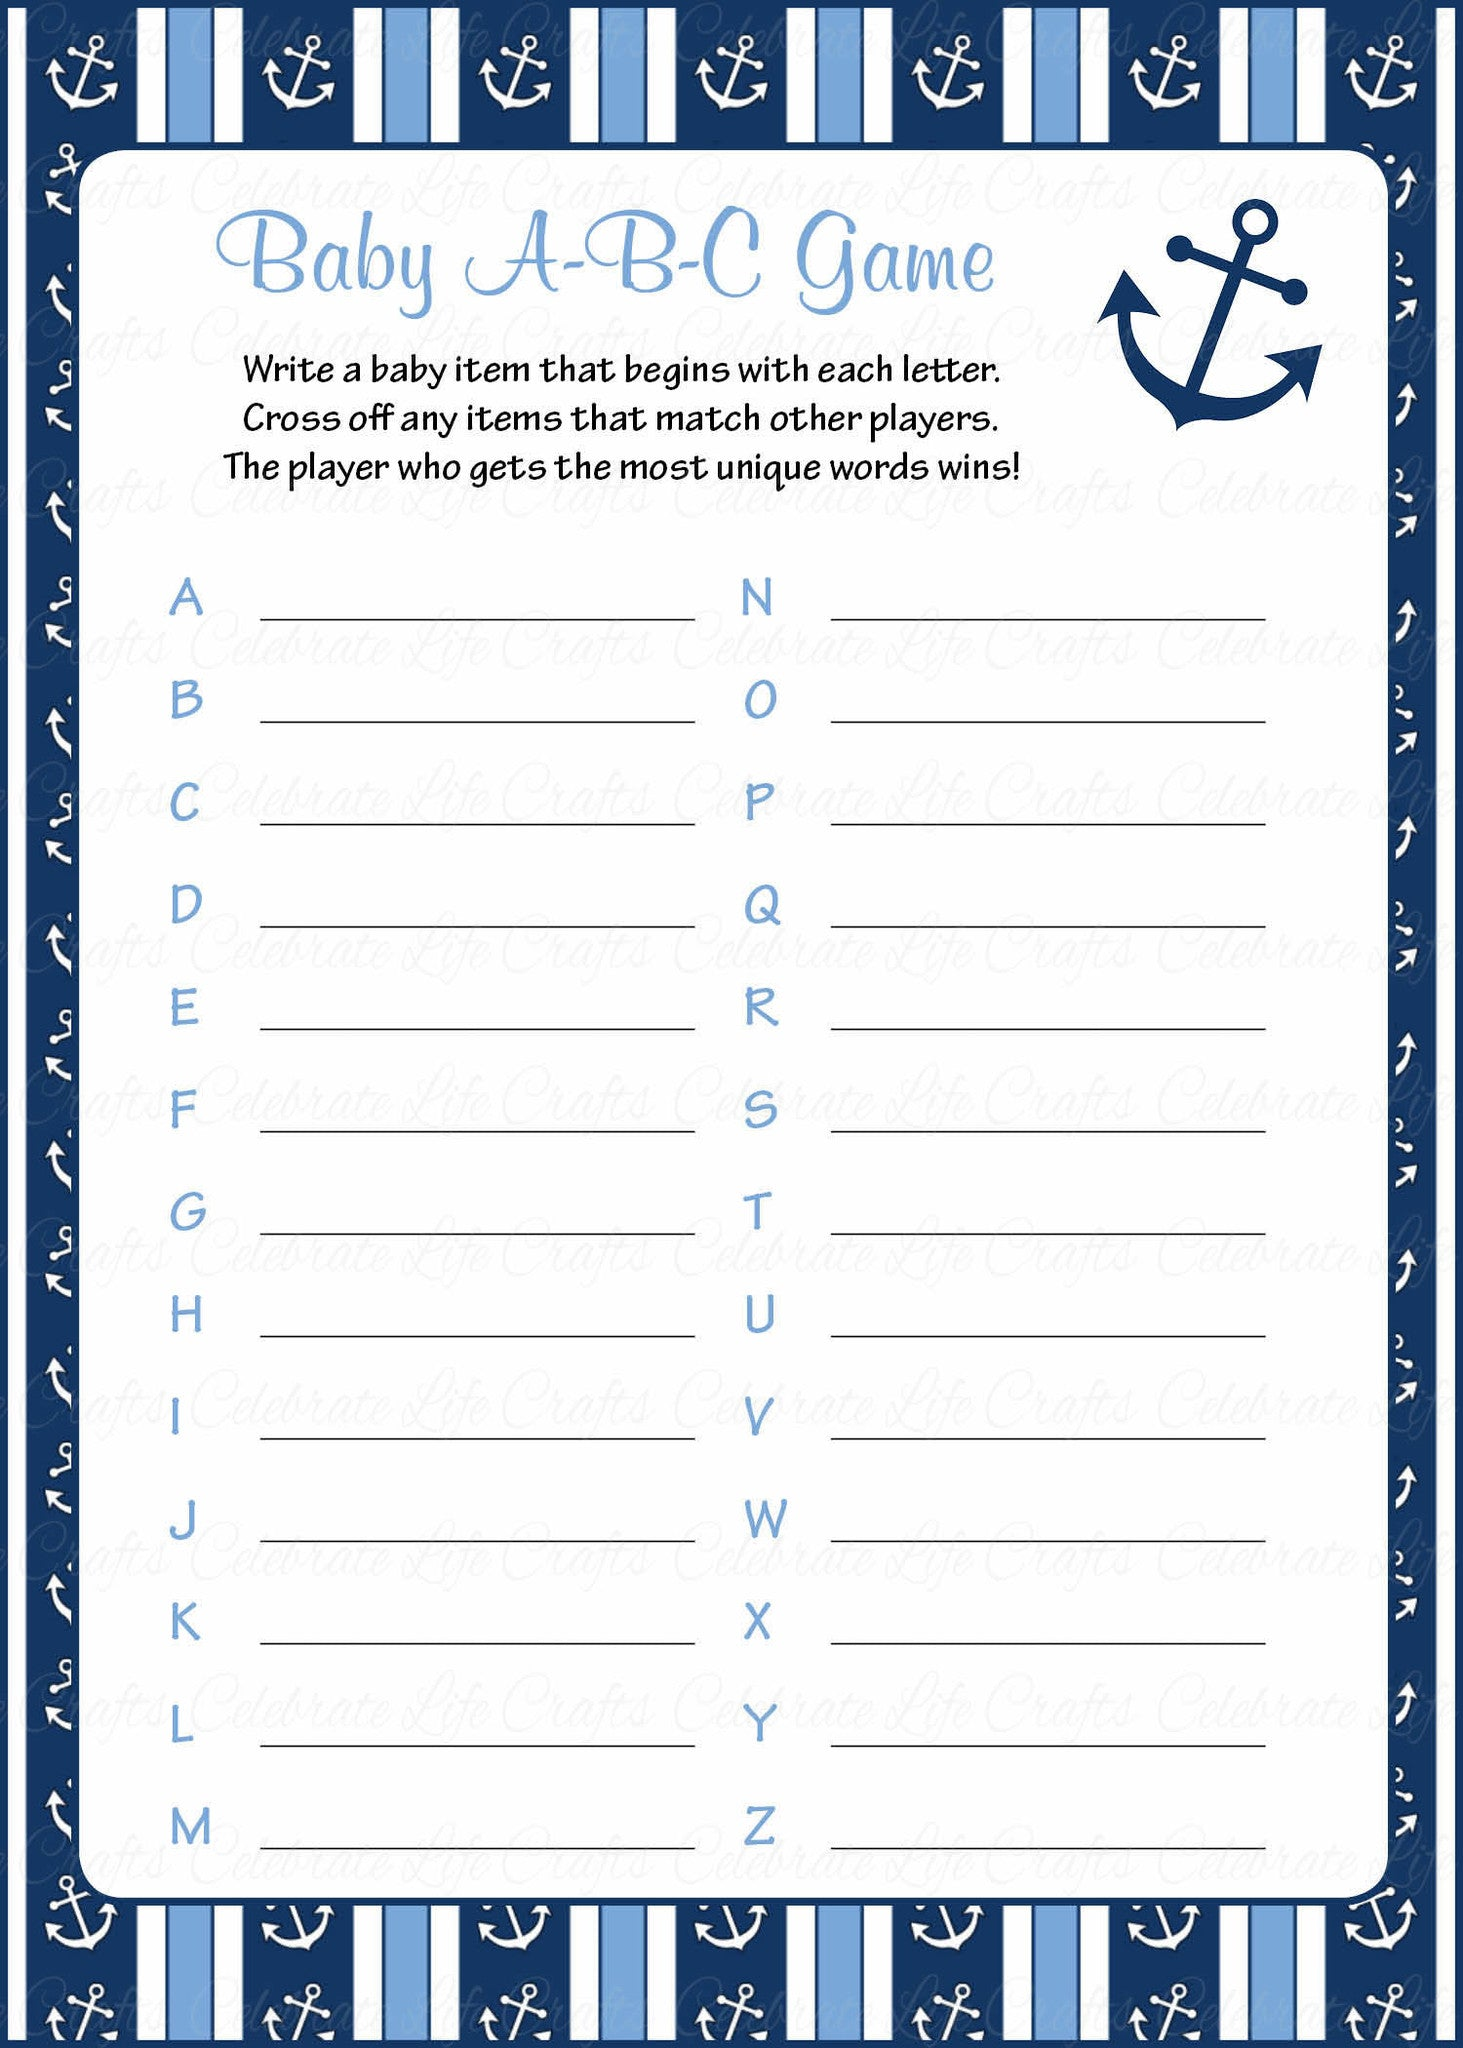 Baby ABC Game   Printable Download   Navy U0026 Blue Baby Shower Game   B15002.